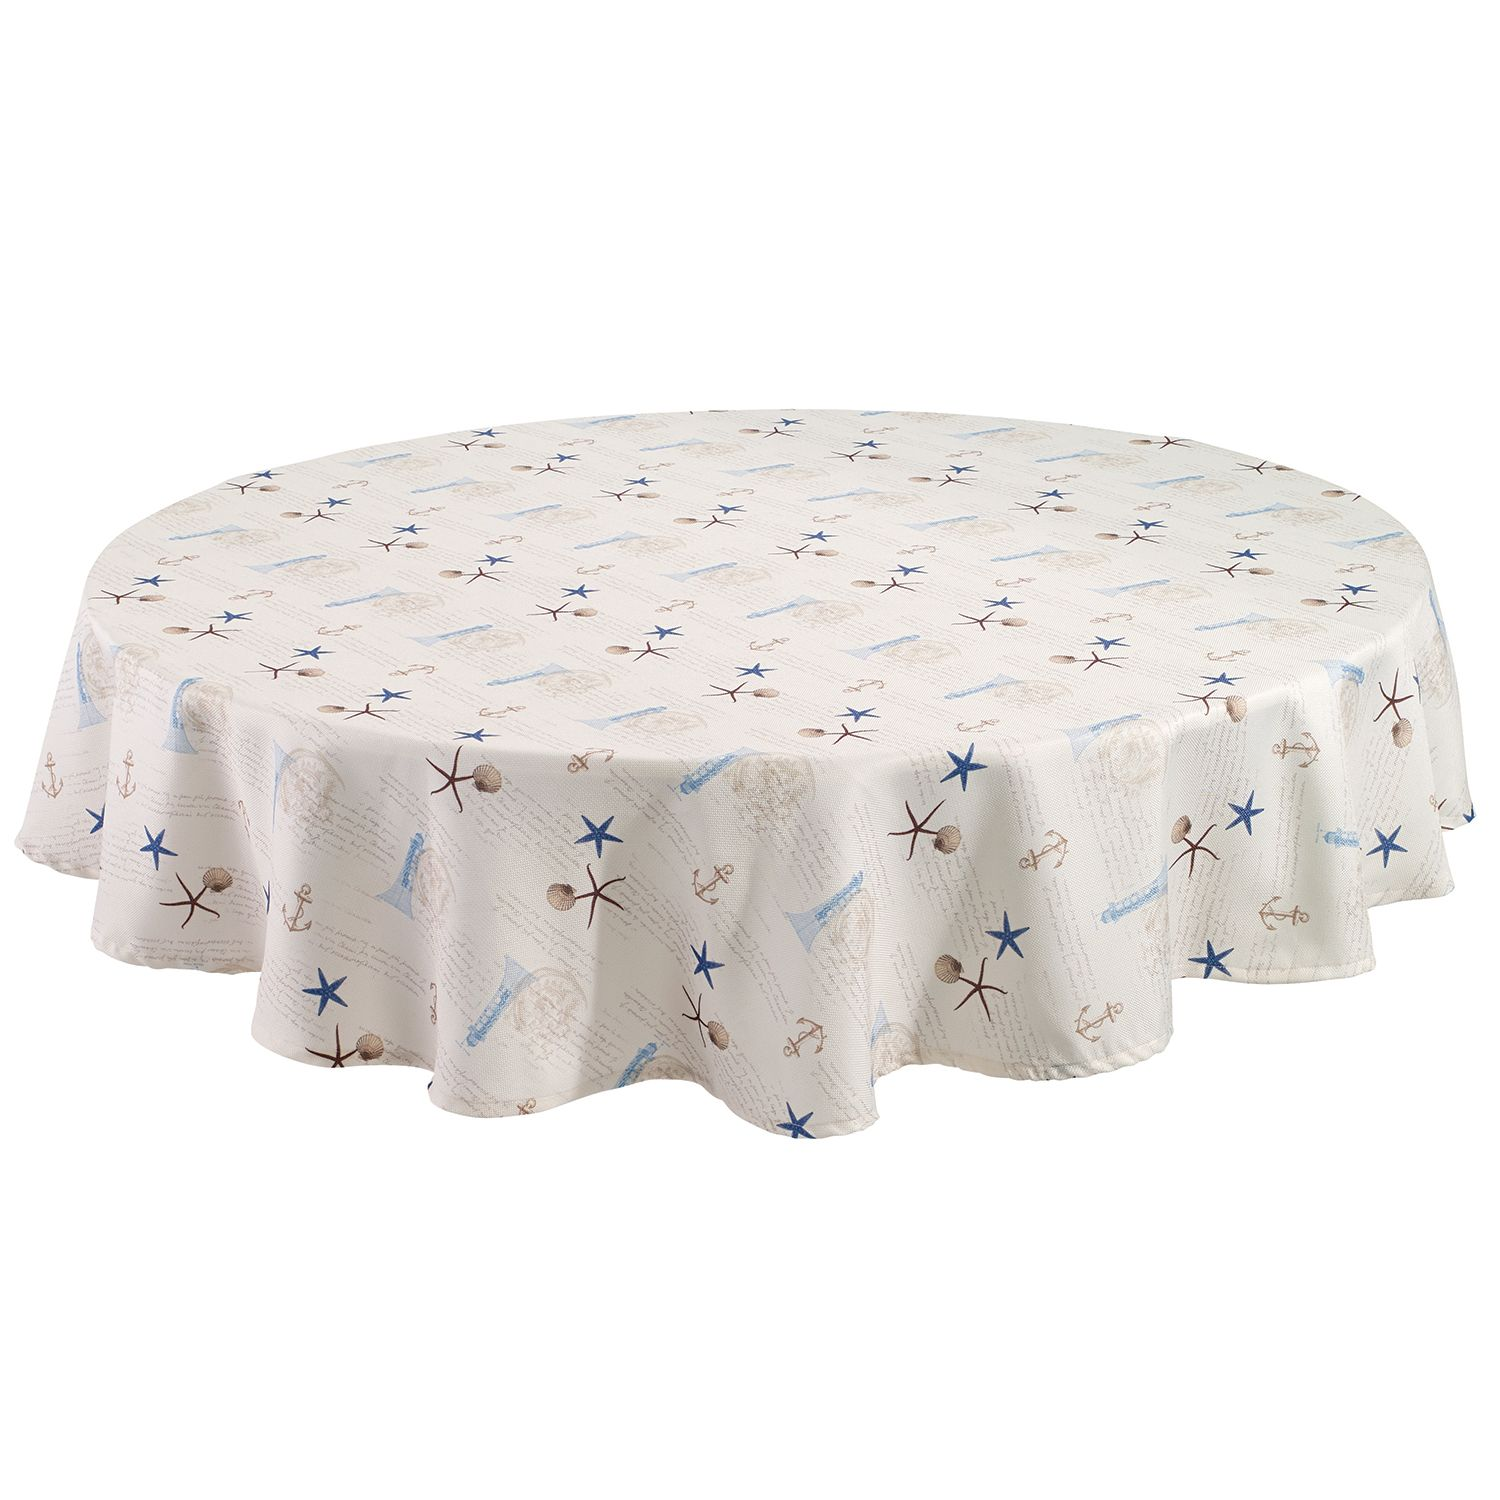 antigua round table cloth pier imports accent tablecloth battery standard lamp lawn furniture ikea living room clearance low coffee with drawers one dining tables home interior